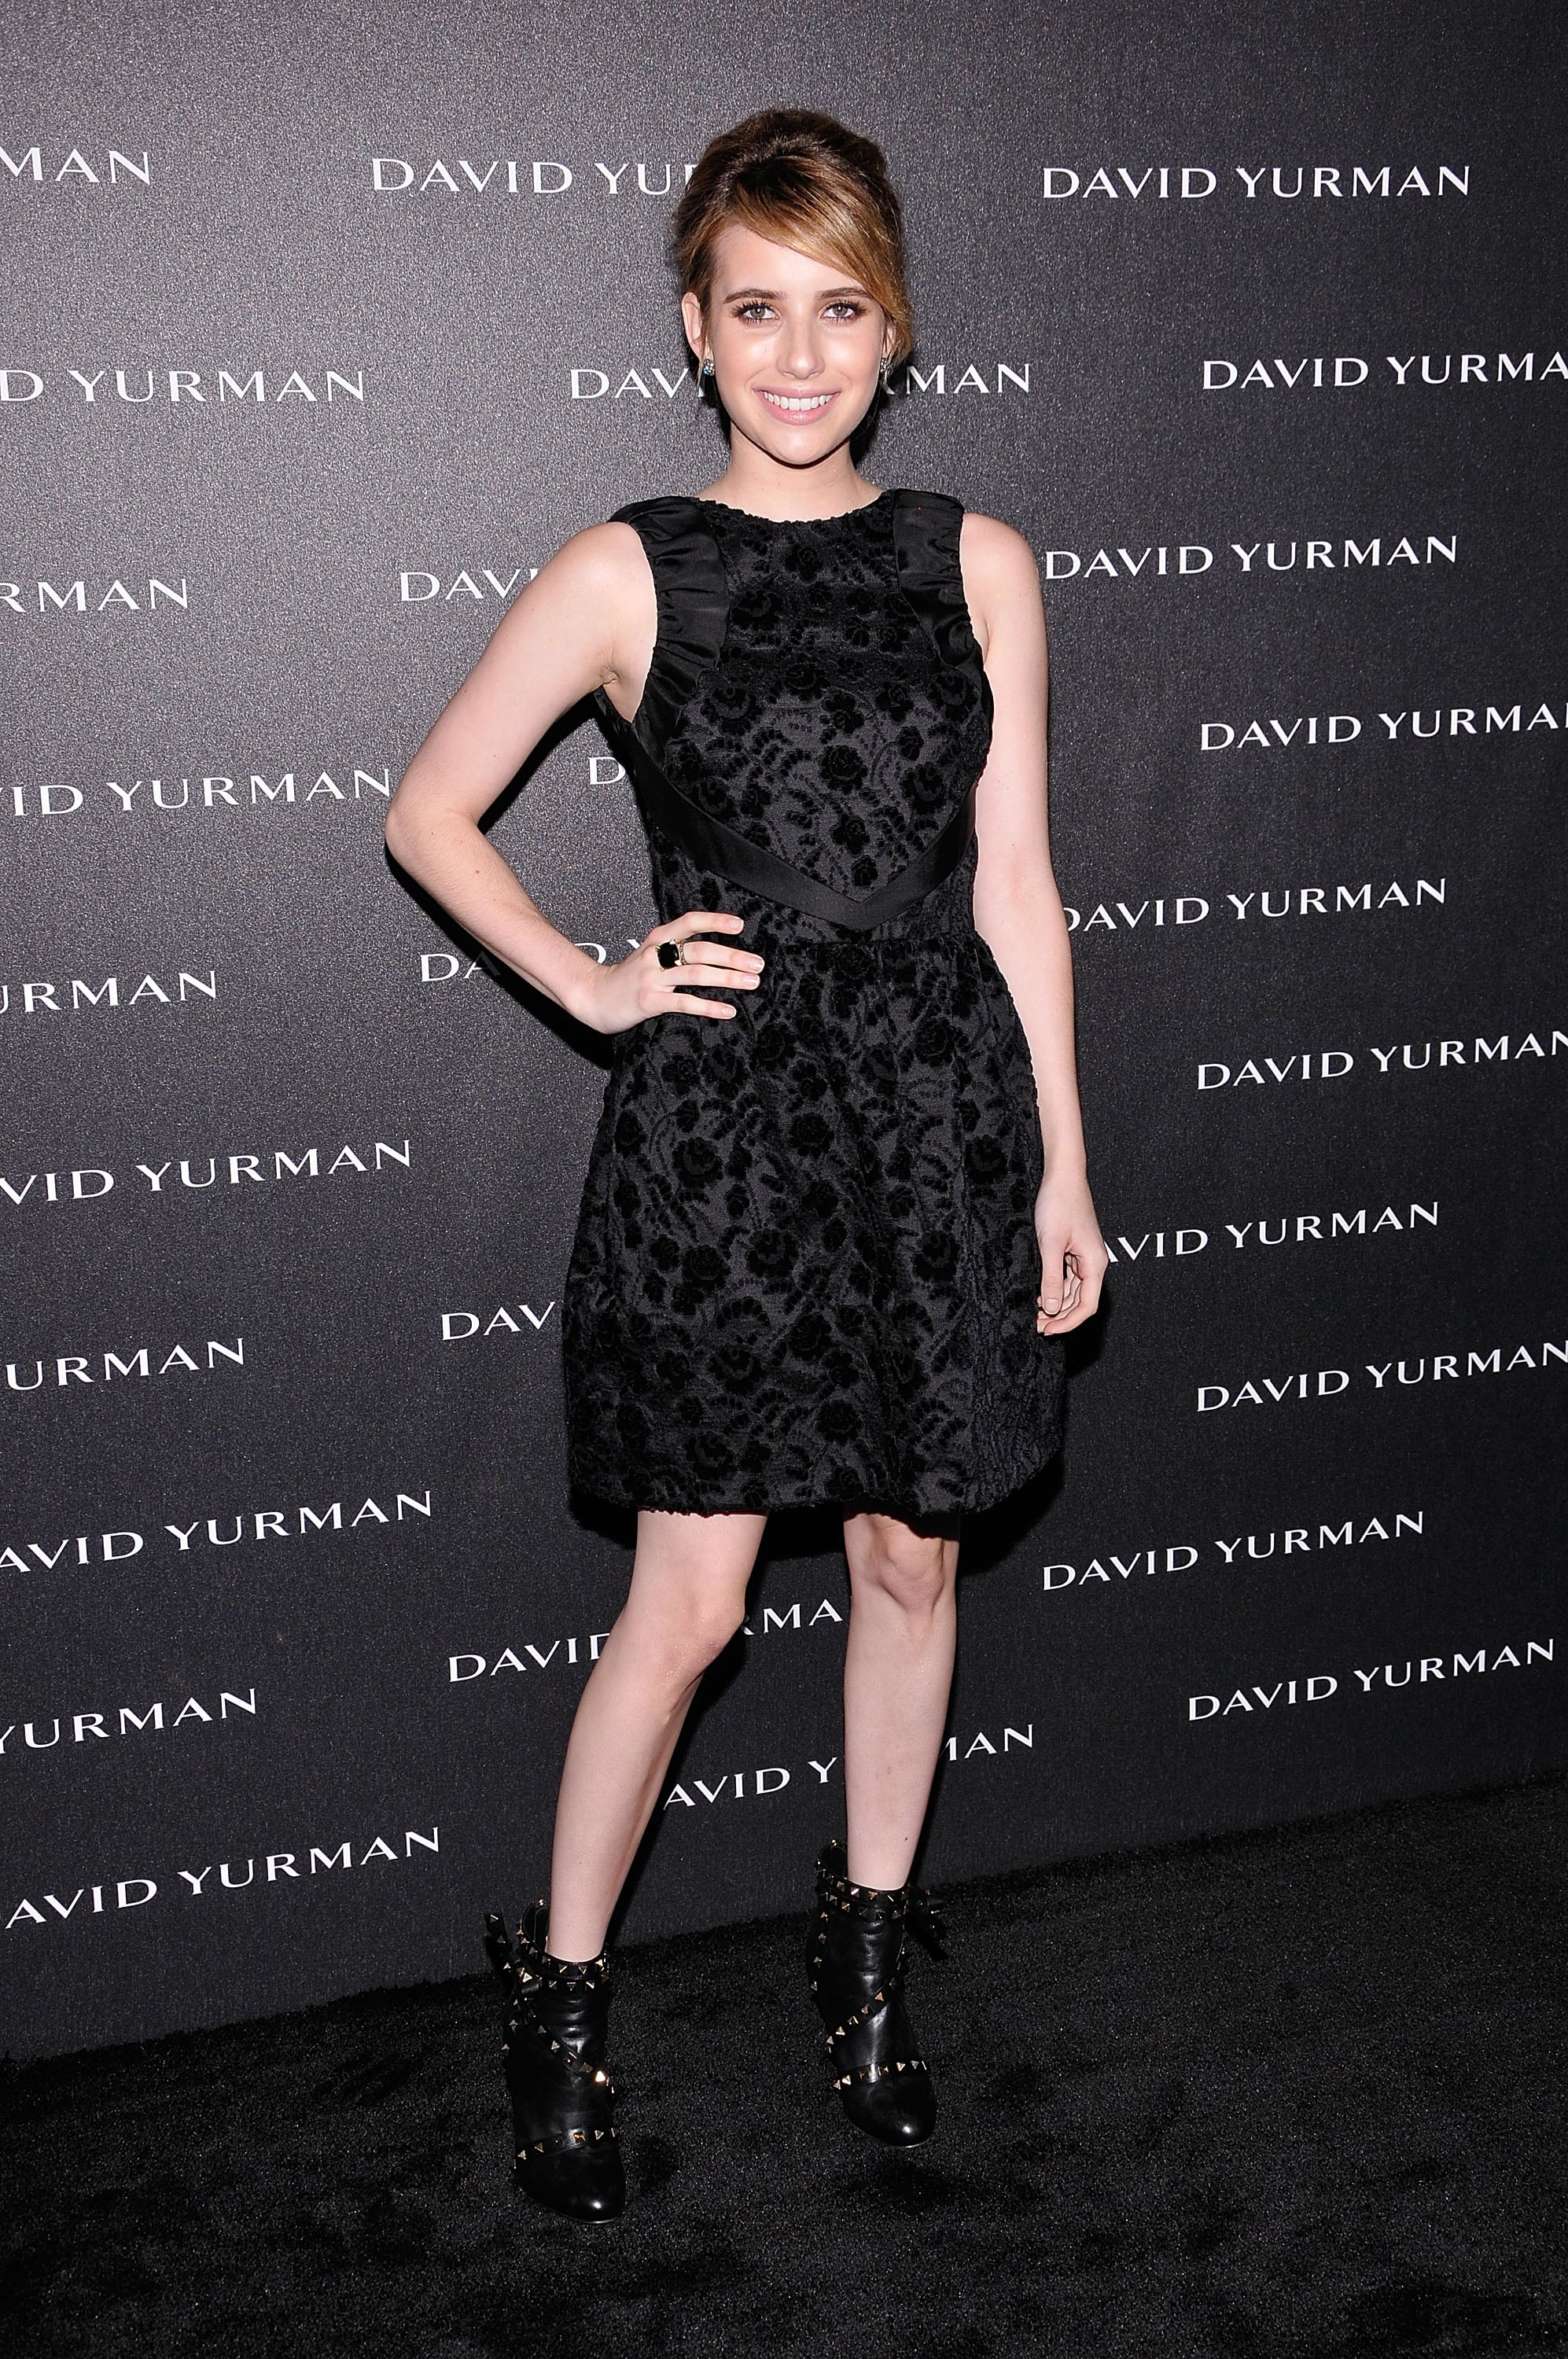 Emma kept things cool and simple in a black jacquard dress with studded Valentino booties for a David Yurman event in May 2012.